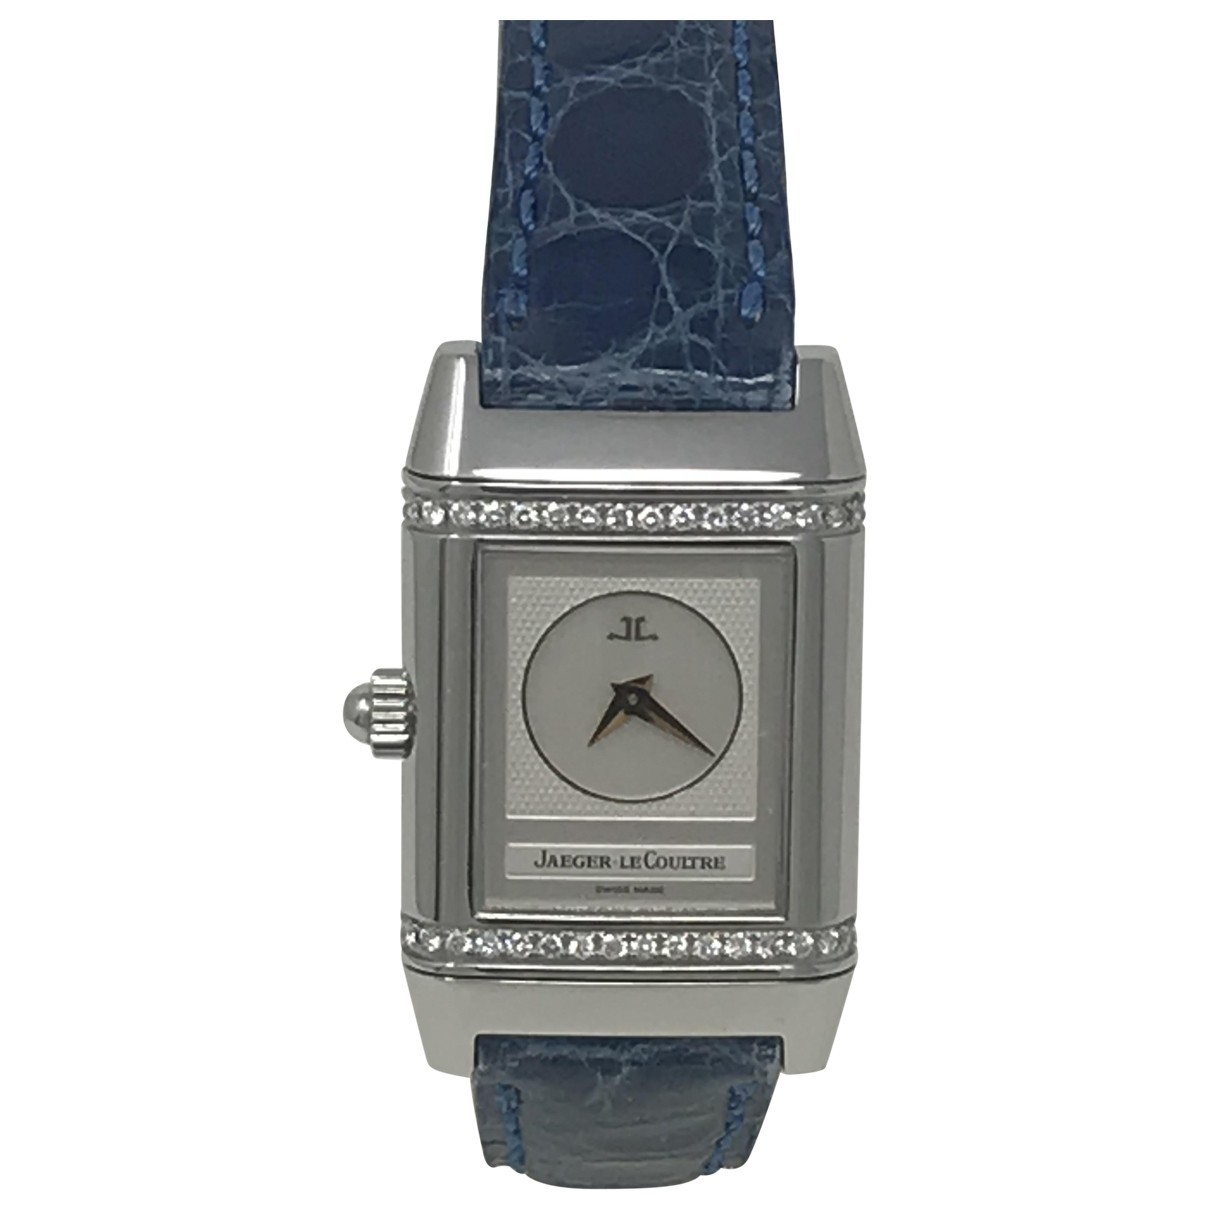 Jaeger-lecoultre Reverso Duetto Uhr in  Silber Stahl